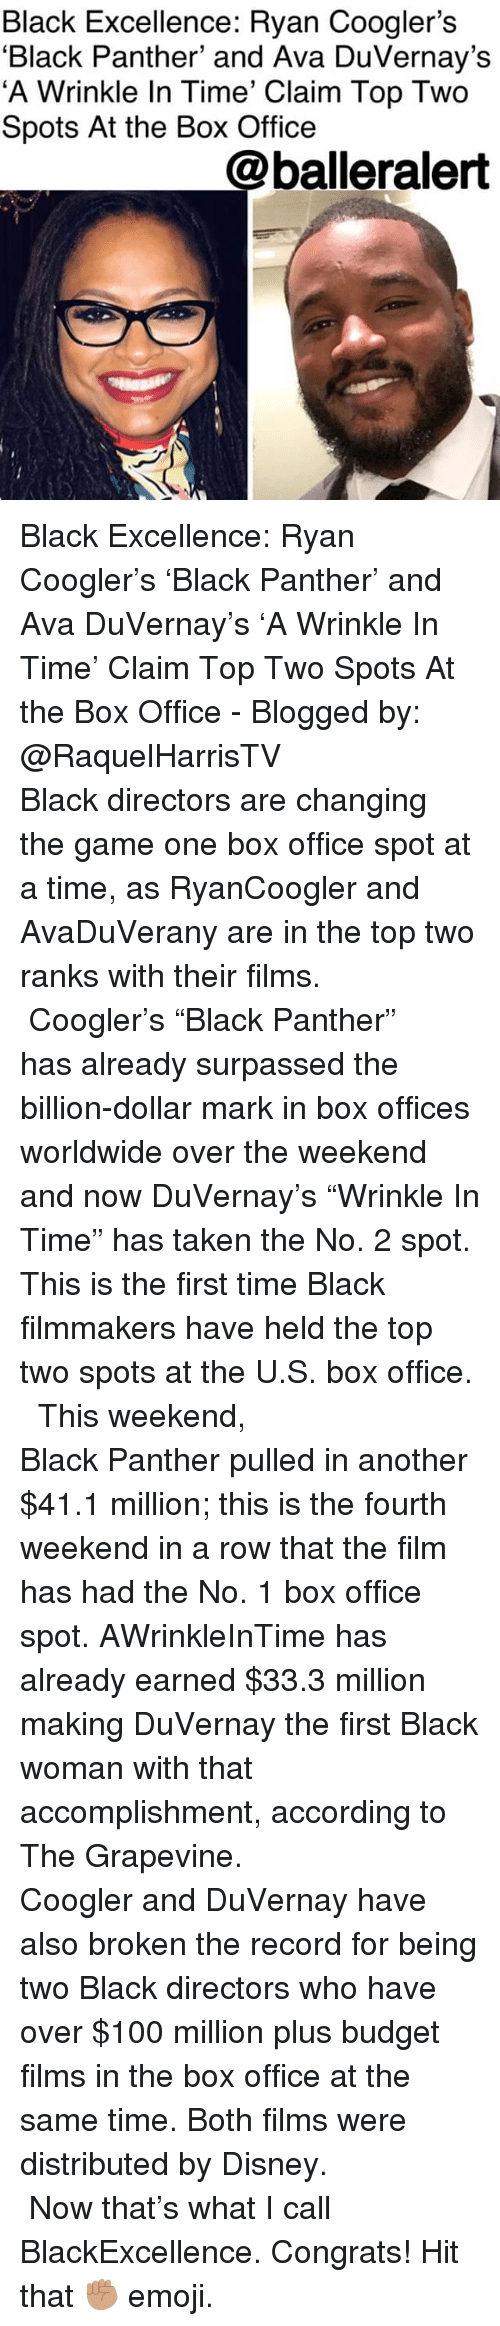 "Anaconda, Disney, and Emoji: Black Excellence: Ryan Coogler's  'Black Panther' and Ava DuVernay's  'A Wrinkle In Time' Claim Top Two  Spots At the Box Office  @balleralert Black Excellence: Ryan Coogler's 'Black Panther' and Ava DuVernay's 'A Wrinkle In Time' Claim Top Two Spots At the Box Office - Blogged by: @RaquelHarrisTV ⠀⠀⠀⠀⠀⠀⠀⠀⠀ ⠀⠀⠀⠀⠀⠀⠀⠀⠀ Black directors are changing the game one box office spot at a time, as RyanCoogler and AvaDuVerany are in the top two ranks with their films. ⠀⠀⠀⠀⠀⠀⠀⠀⠀ ⠀⠀⠀⠀⠀⠀⠀⠀⠀ Coogler's ""Black Panther"" has already surpassed the billion-dollar mark in box offices worldwide over the weekend and now DuVernay's ""Wrinkle In Time"" has taken the No. 2 spot. This is the first time Black filmmakers have held the top two spots at the U.S. box office. ⠀⠀⠀⠀⠀⠀⠀⠀⠀ ⠀⠀⠀⠀⠀⠀⠀⠀⠀ This weekend, Black Panther pulled in another $41.1 million; this is the fourth weekend in a row that the film has had the No. 1 box office spot. AWrinkleInTime has already earned $33.3 million making DuVernay the first Black woman with that accomplishment, according to The Grapevine. ⠀⠀⠀⠀⠀⠀⠀⠀⠀ ⠀⠀⠀⠀⠀⠀⠀⠀⠀ Coogler and DuVernay have also broken the record for being two Black directors who have over $100 million plus budget films in the box office at the same time. Both films were distributed by Disney. ⠀⠀⠀⠀⠀⠀⠀⠀⠀ ⠀⠀⠀⠀⠀⠀⠀⠀⠀ Now that's what I call BlackExcellence. Congrats! Hit that ✊🏽 emoji."